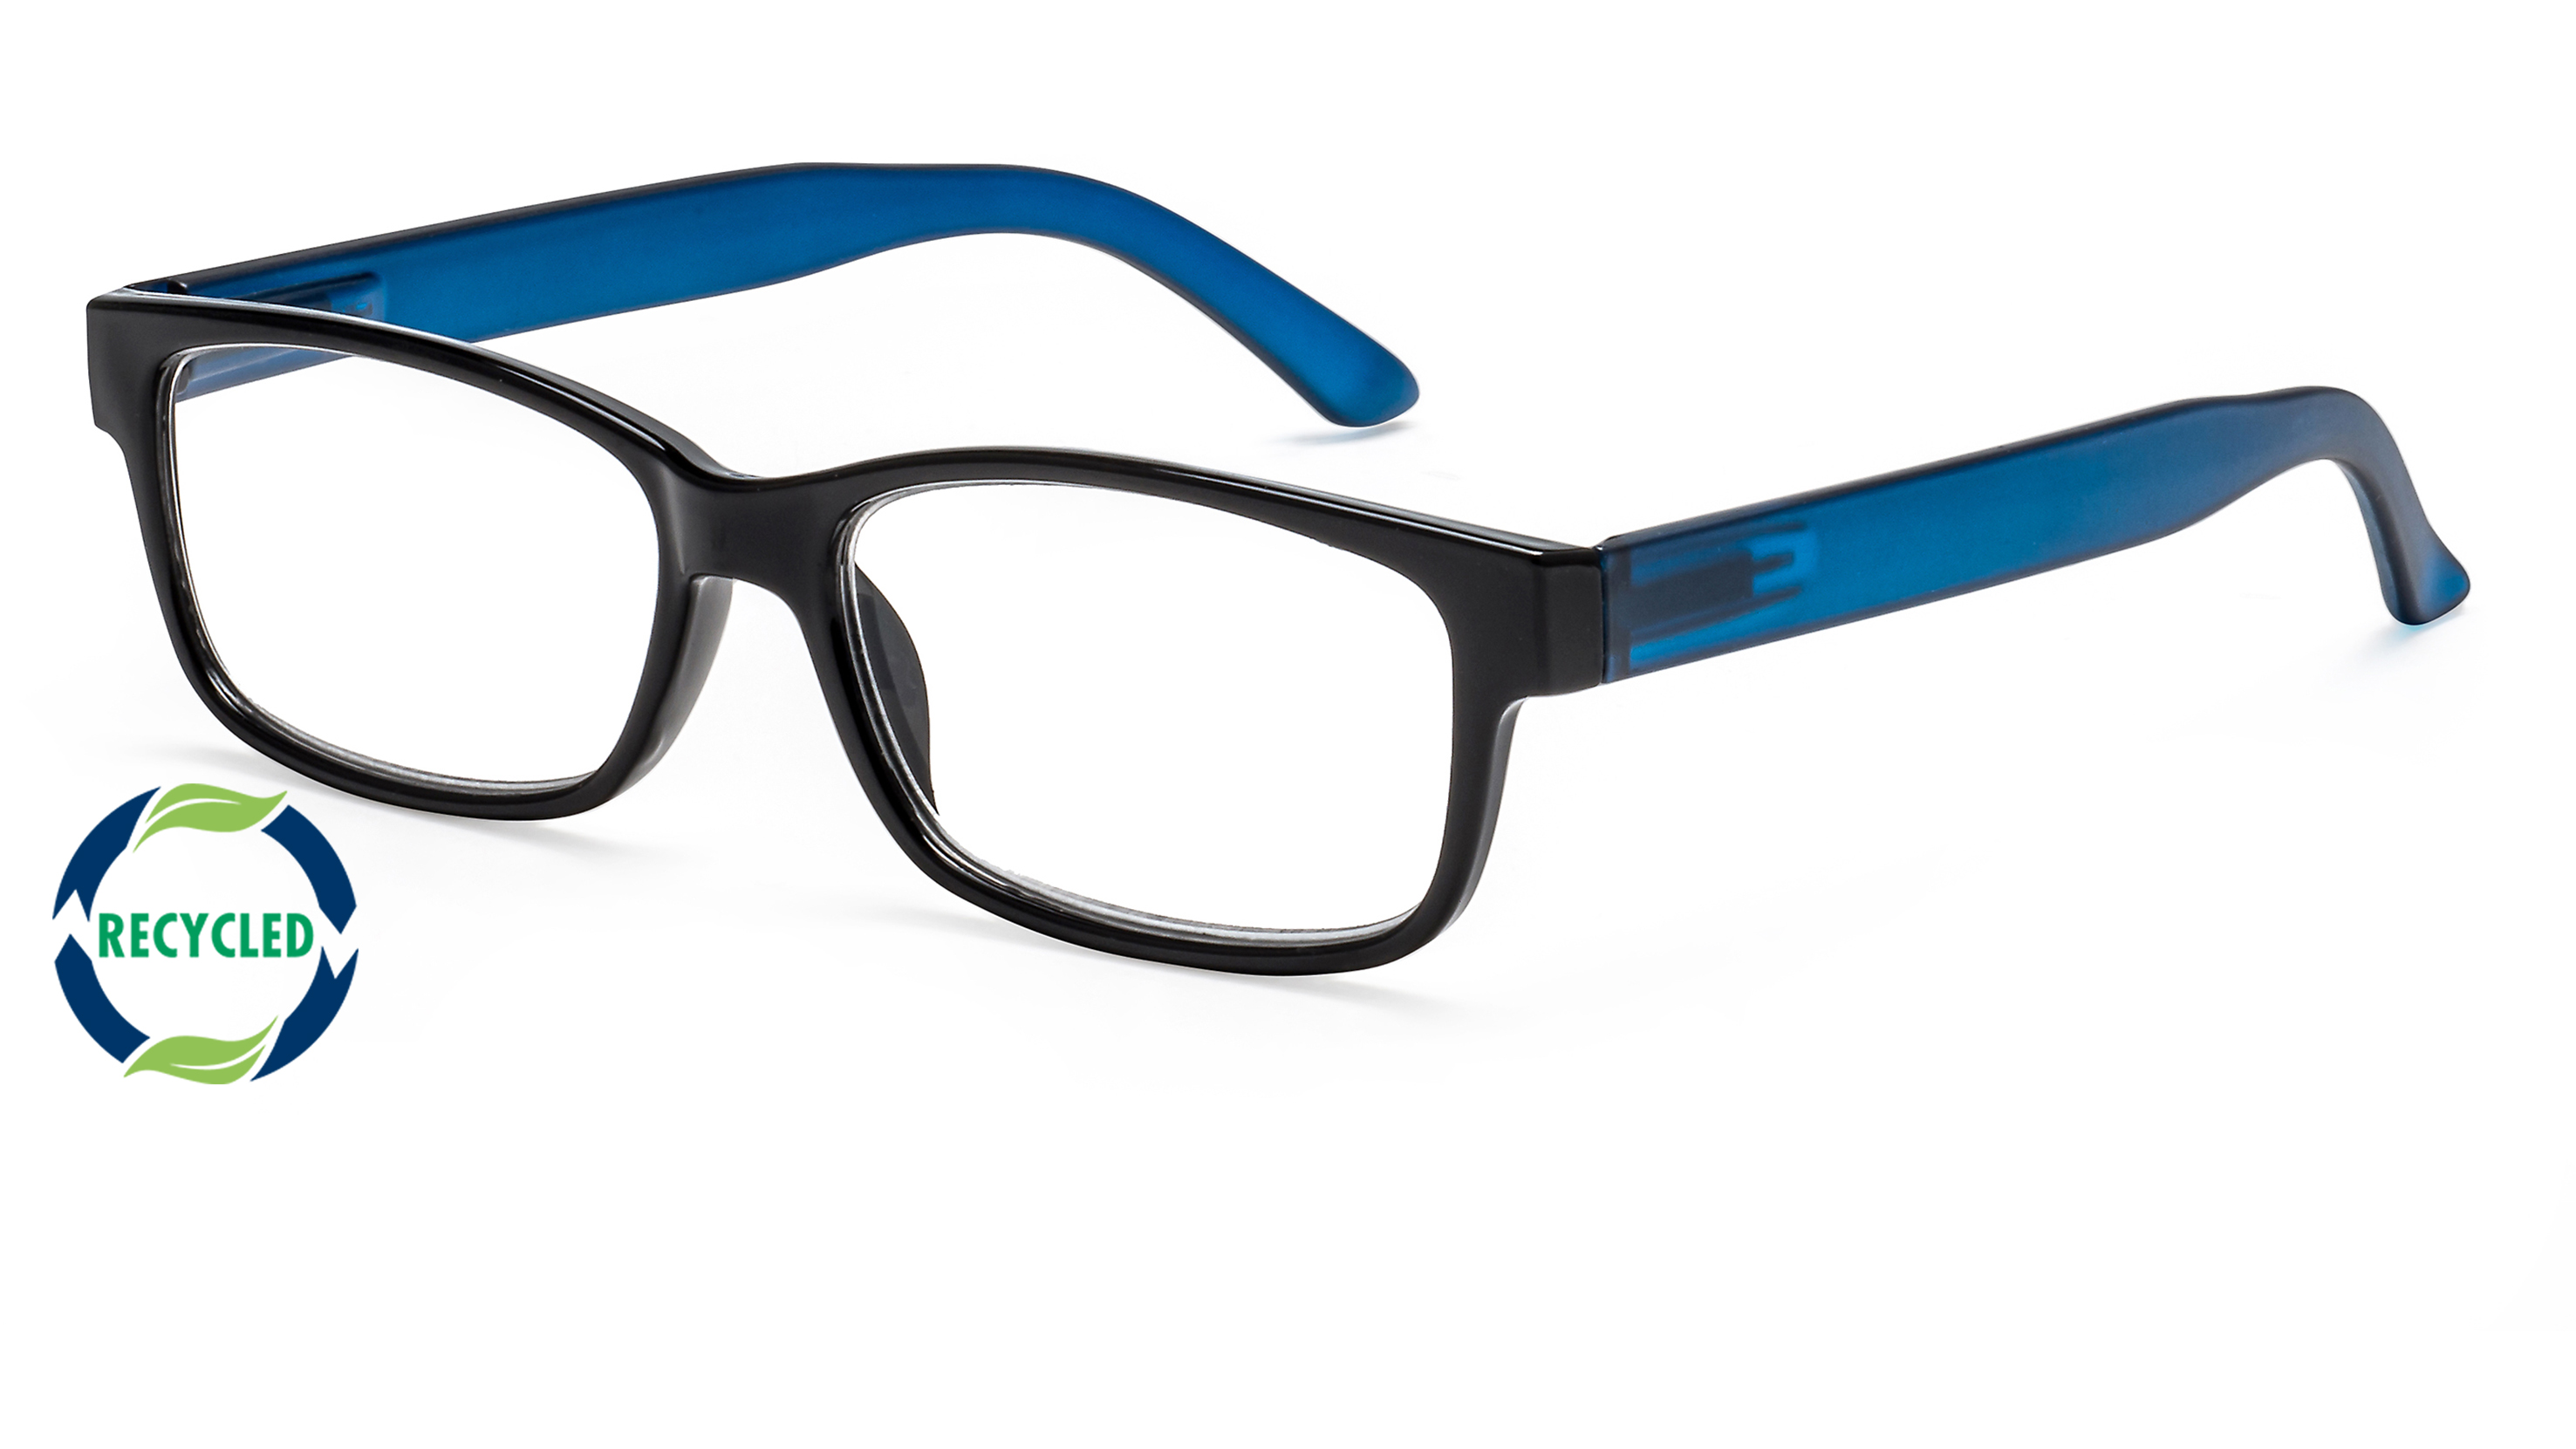 Filtral recycling reading glasses oslo blue